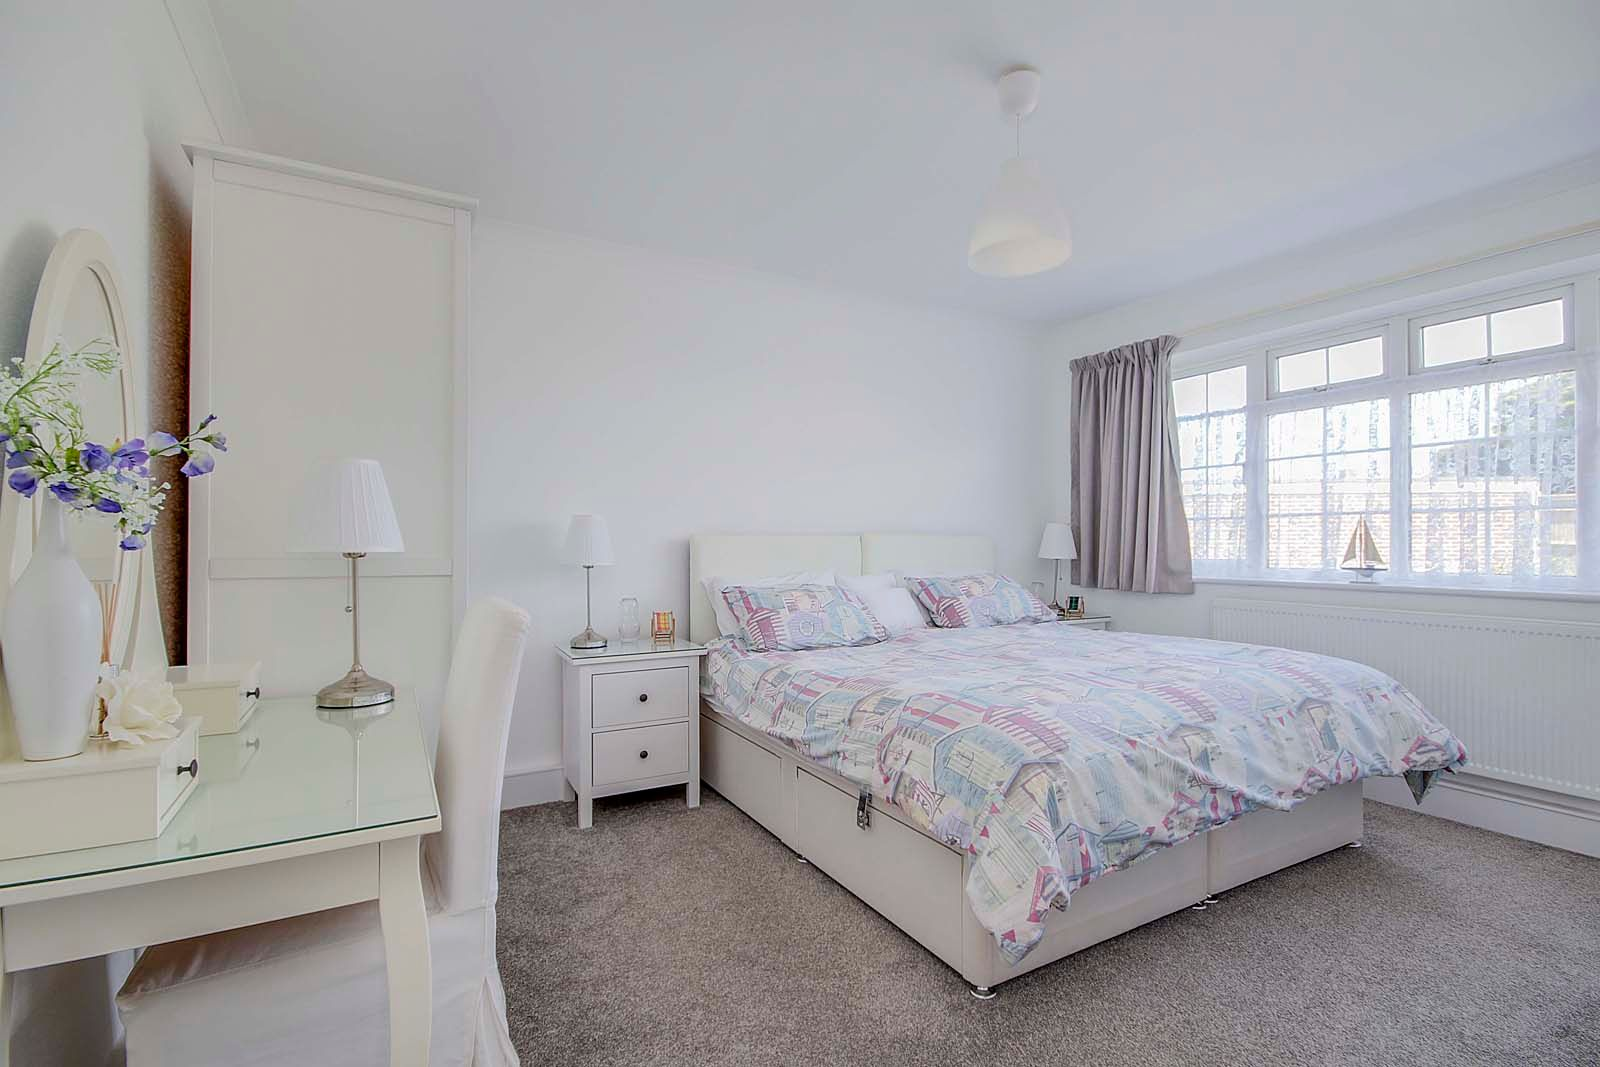 2 bed  for sale in Ferring Marine 7